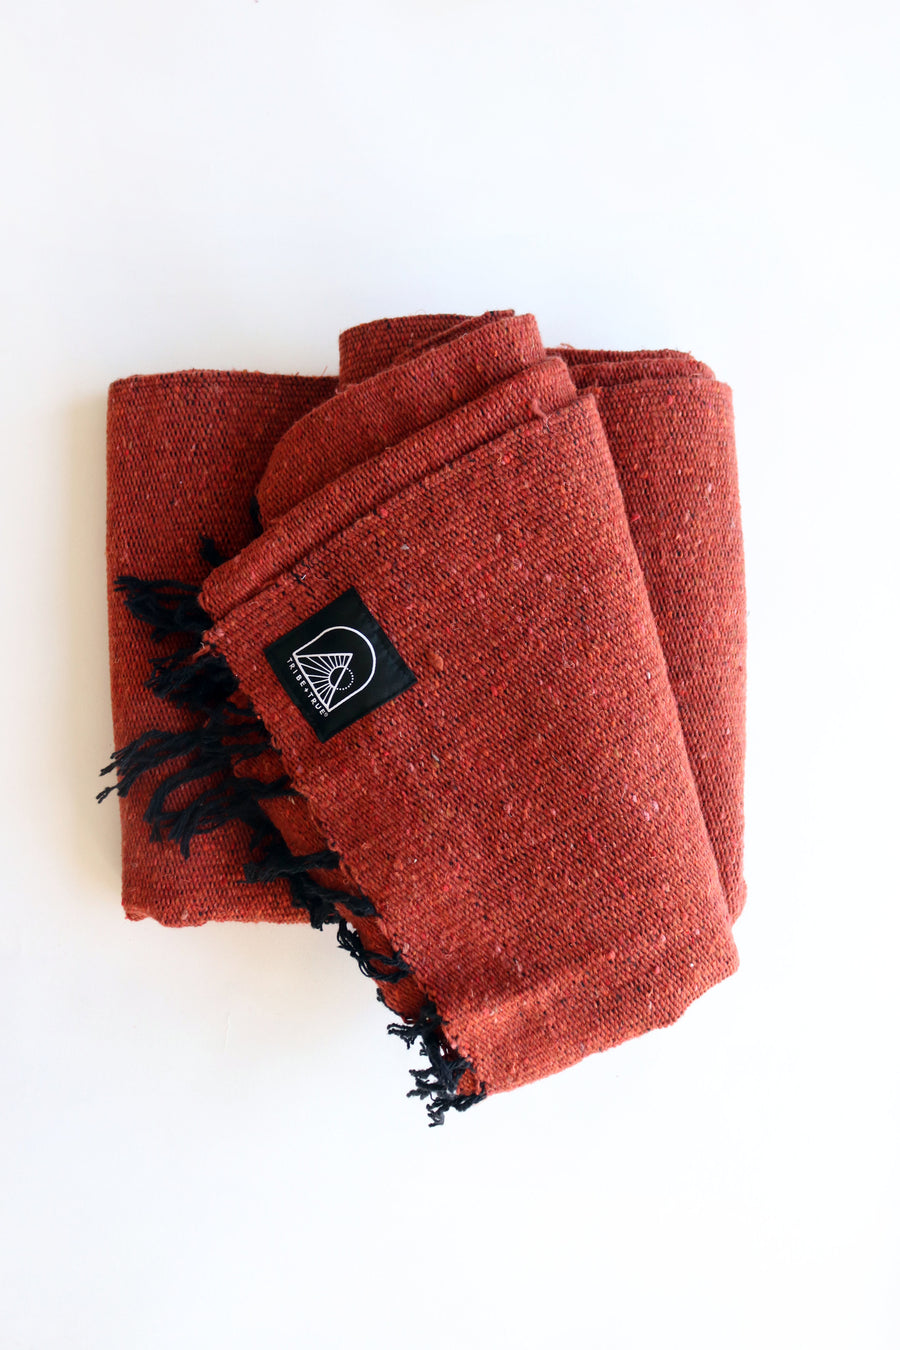 Terracotta Red // Handwoven Blanket (Heavyweight)